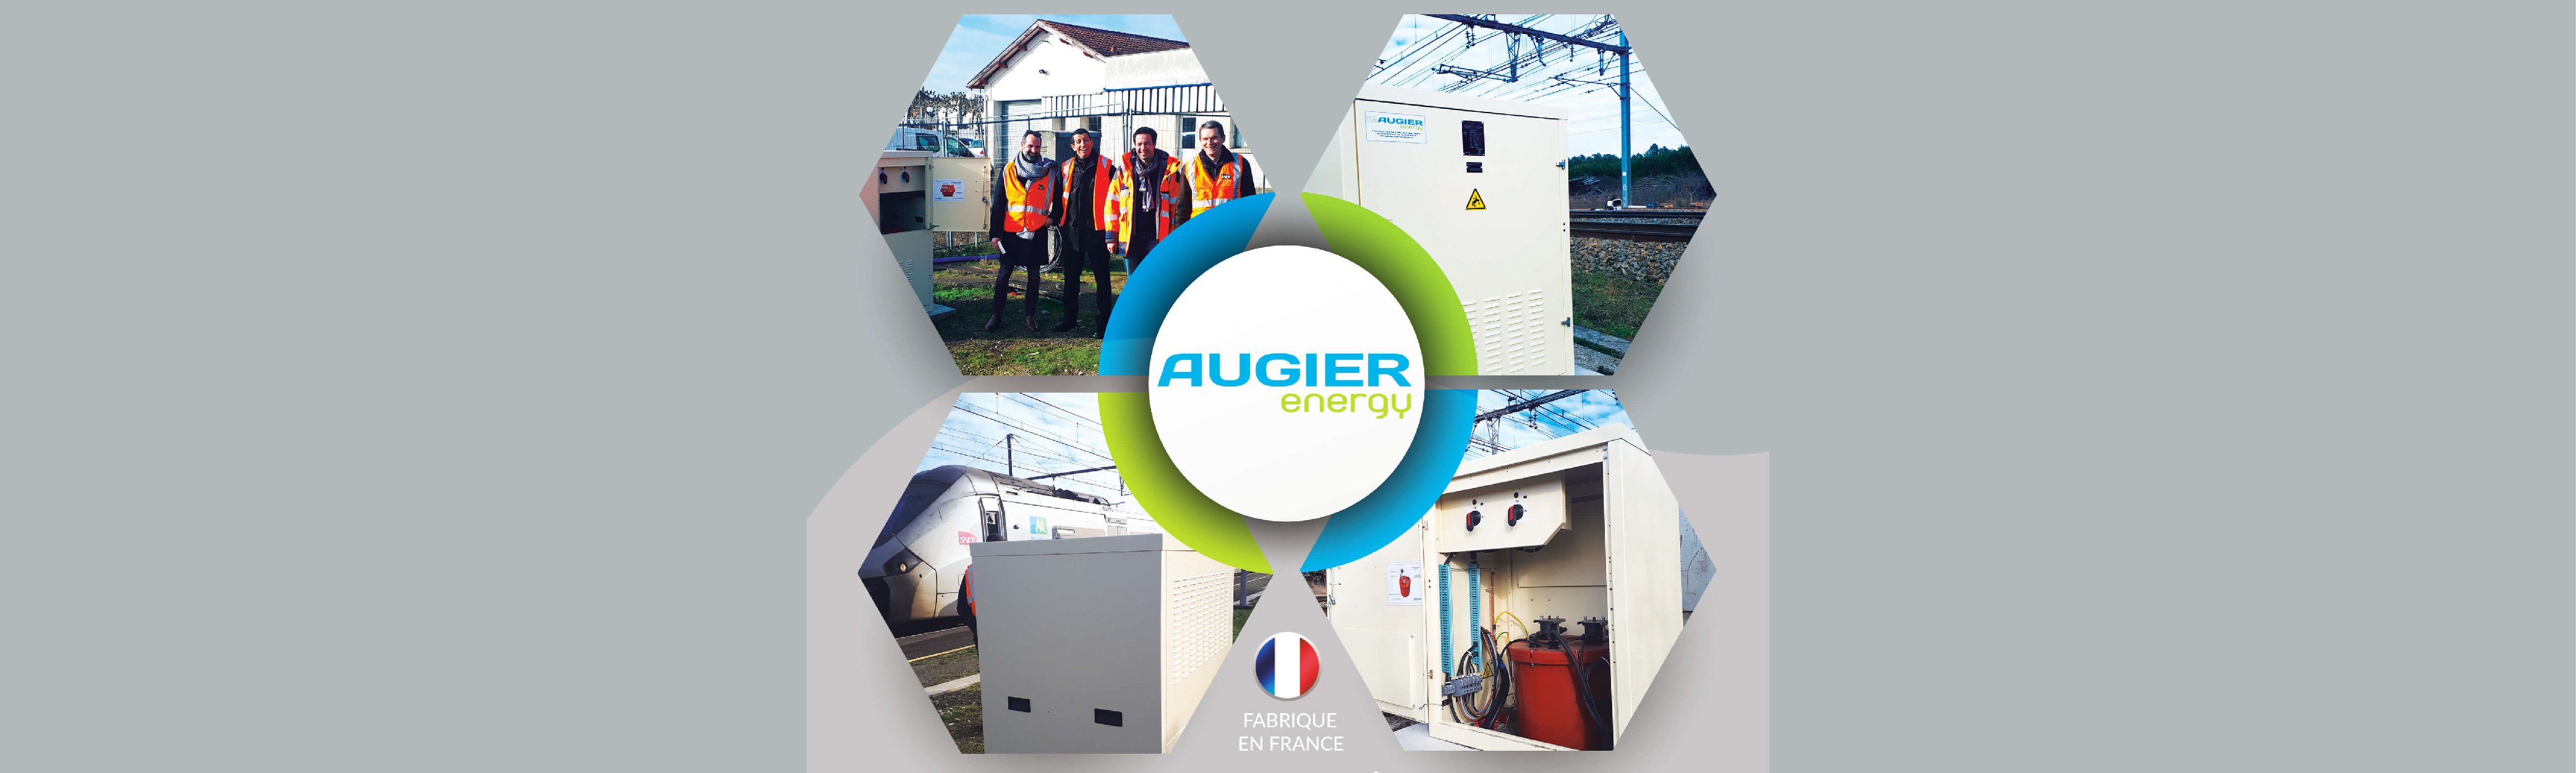 AUGIER ENERGY - Image de l'article - Inforail Magazine – Press article about Augier